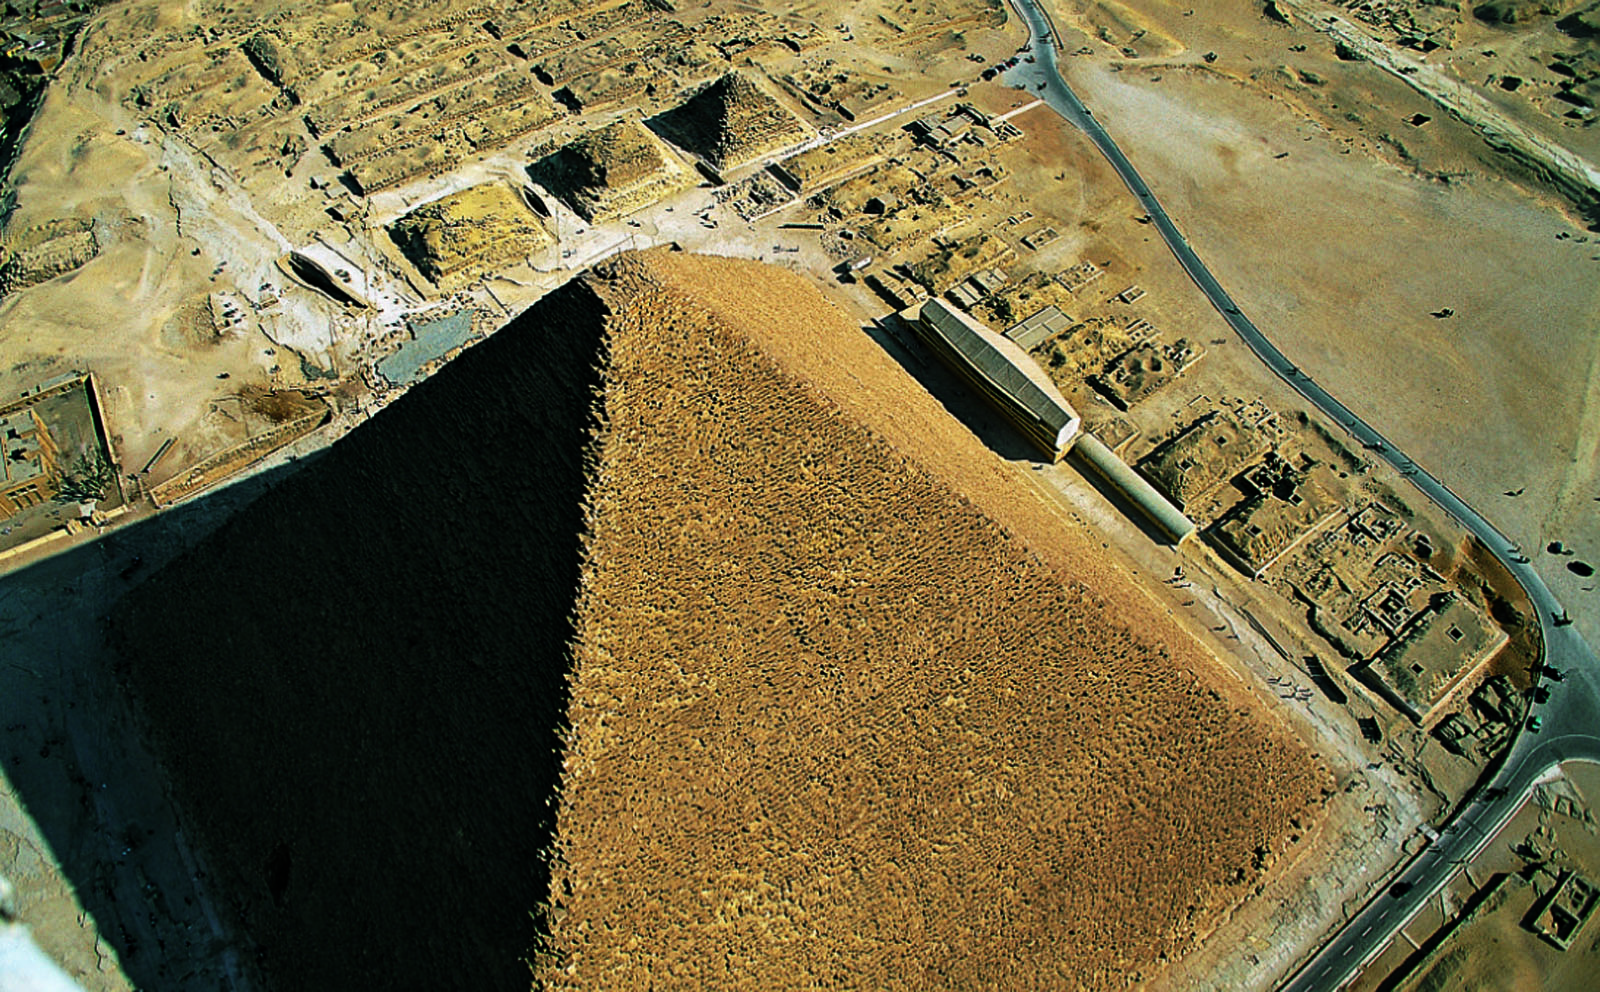 General view: Site: Giza; View: Khufu pyramid, Khufu Boat Museum